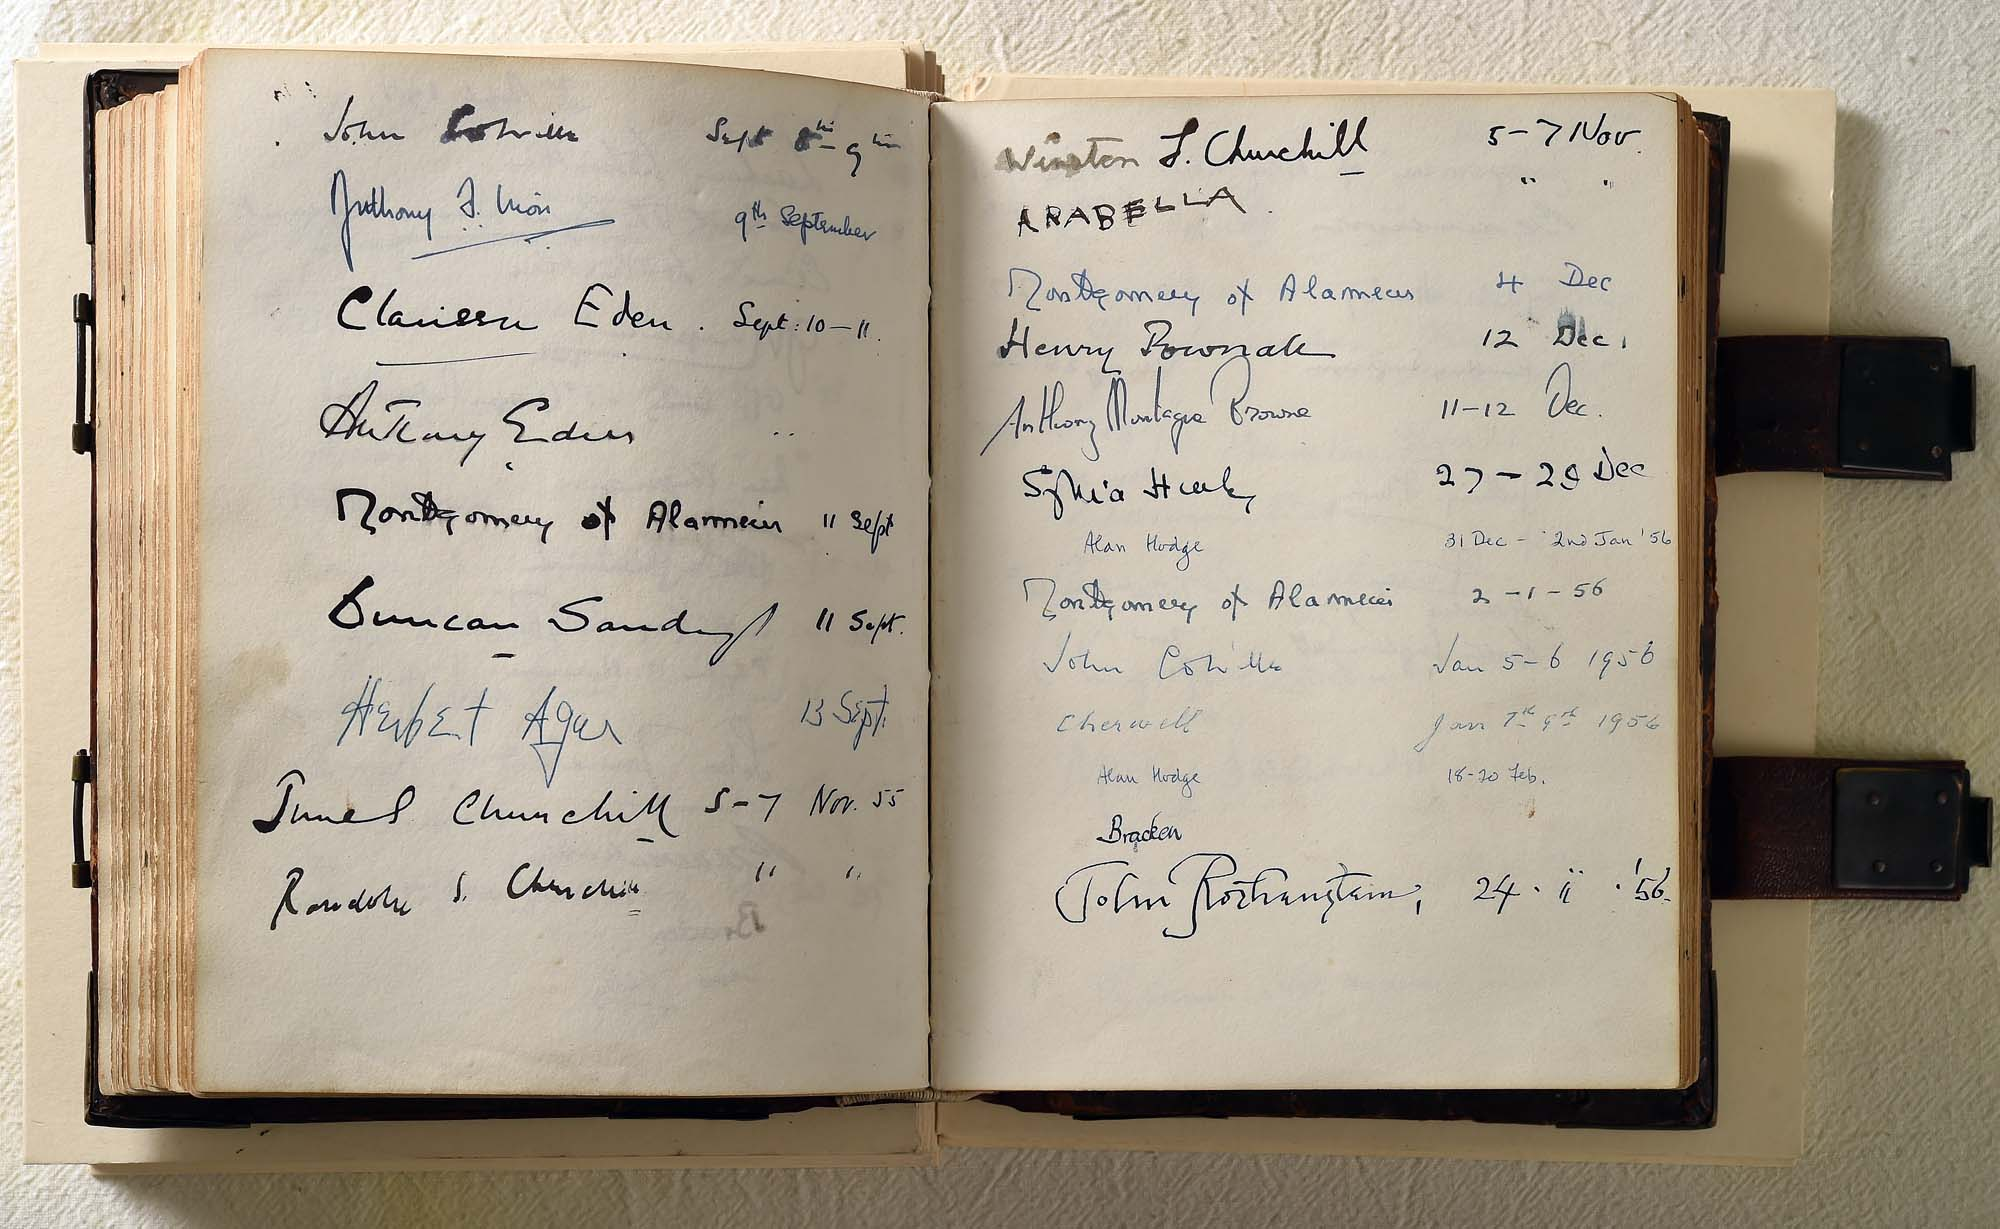 a photo of an open book with signatures and dates in it